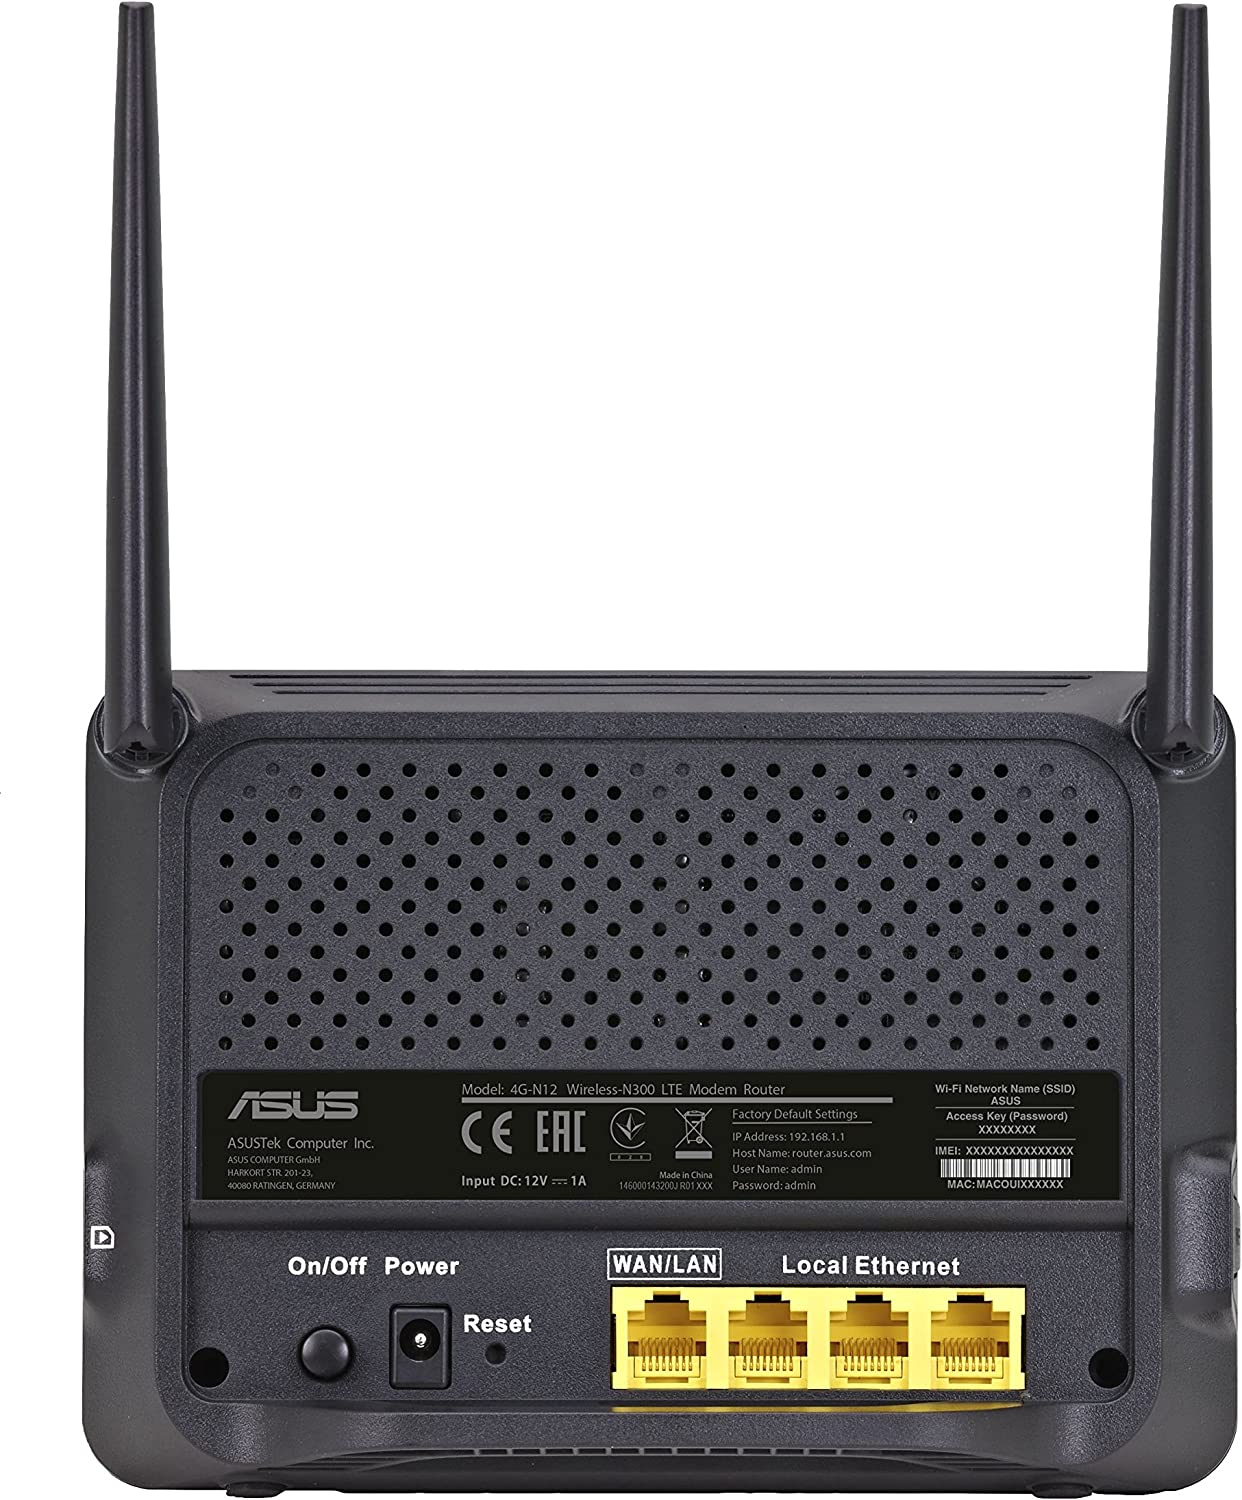 ASUS 4G N12 wireless router WWAN